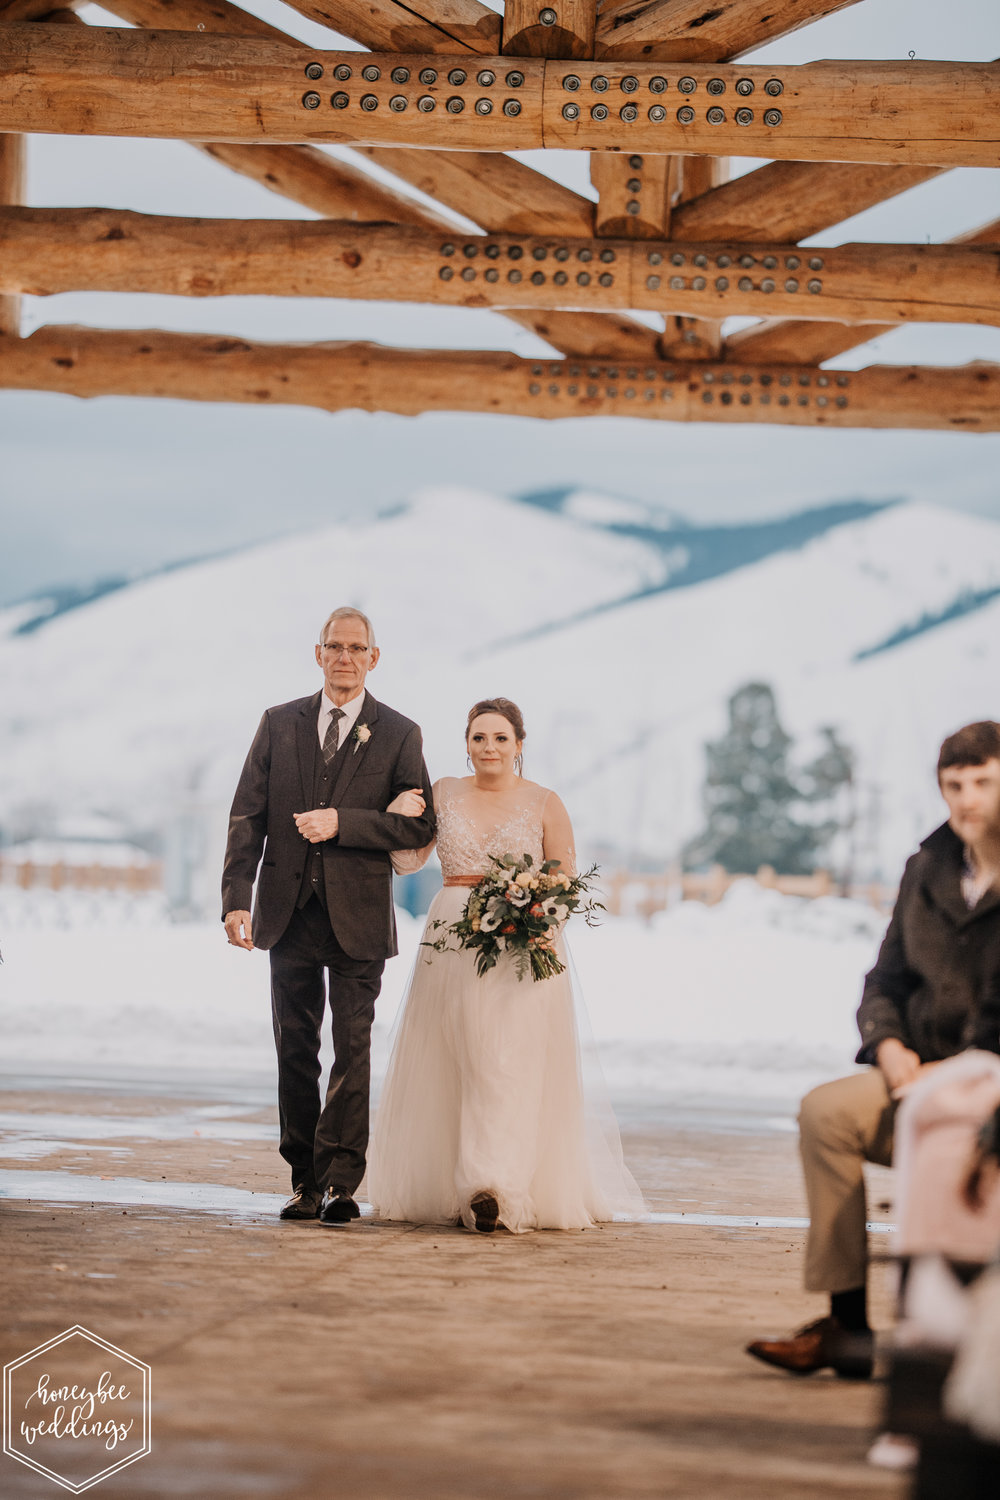 0232Montana Wedding Photographer_Montana winter wedding_Wedding at Fort Missoula_Meri & Carter_December 31, 2015-757.jpg